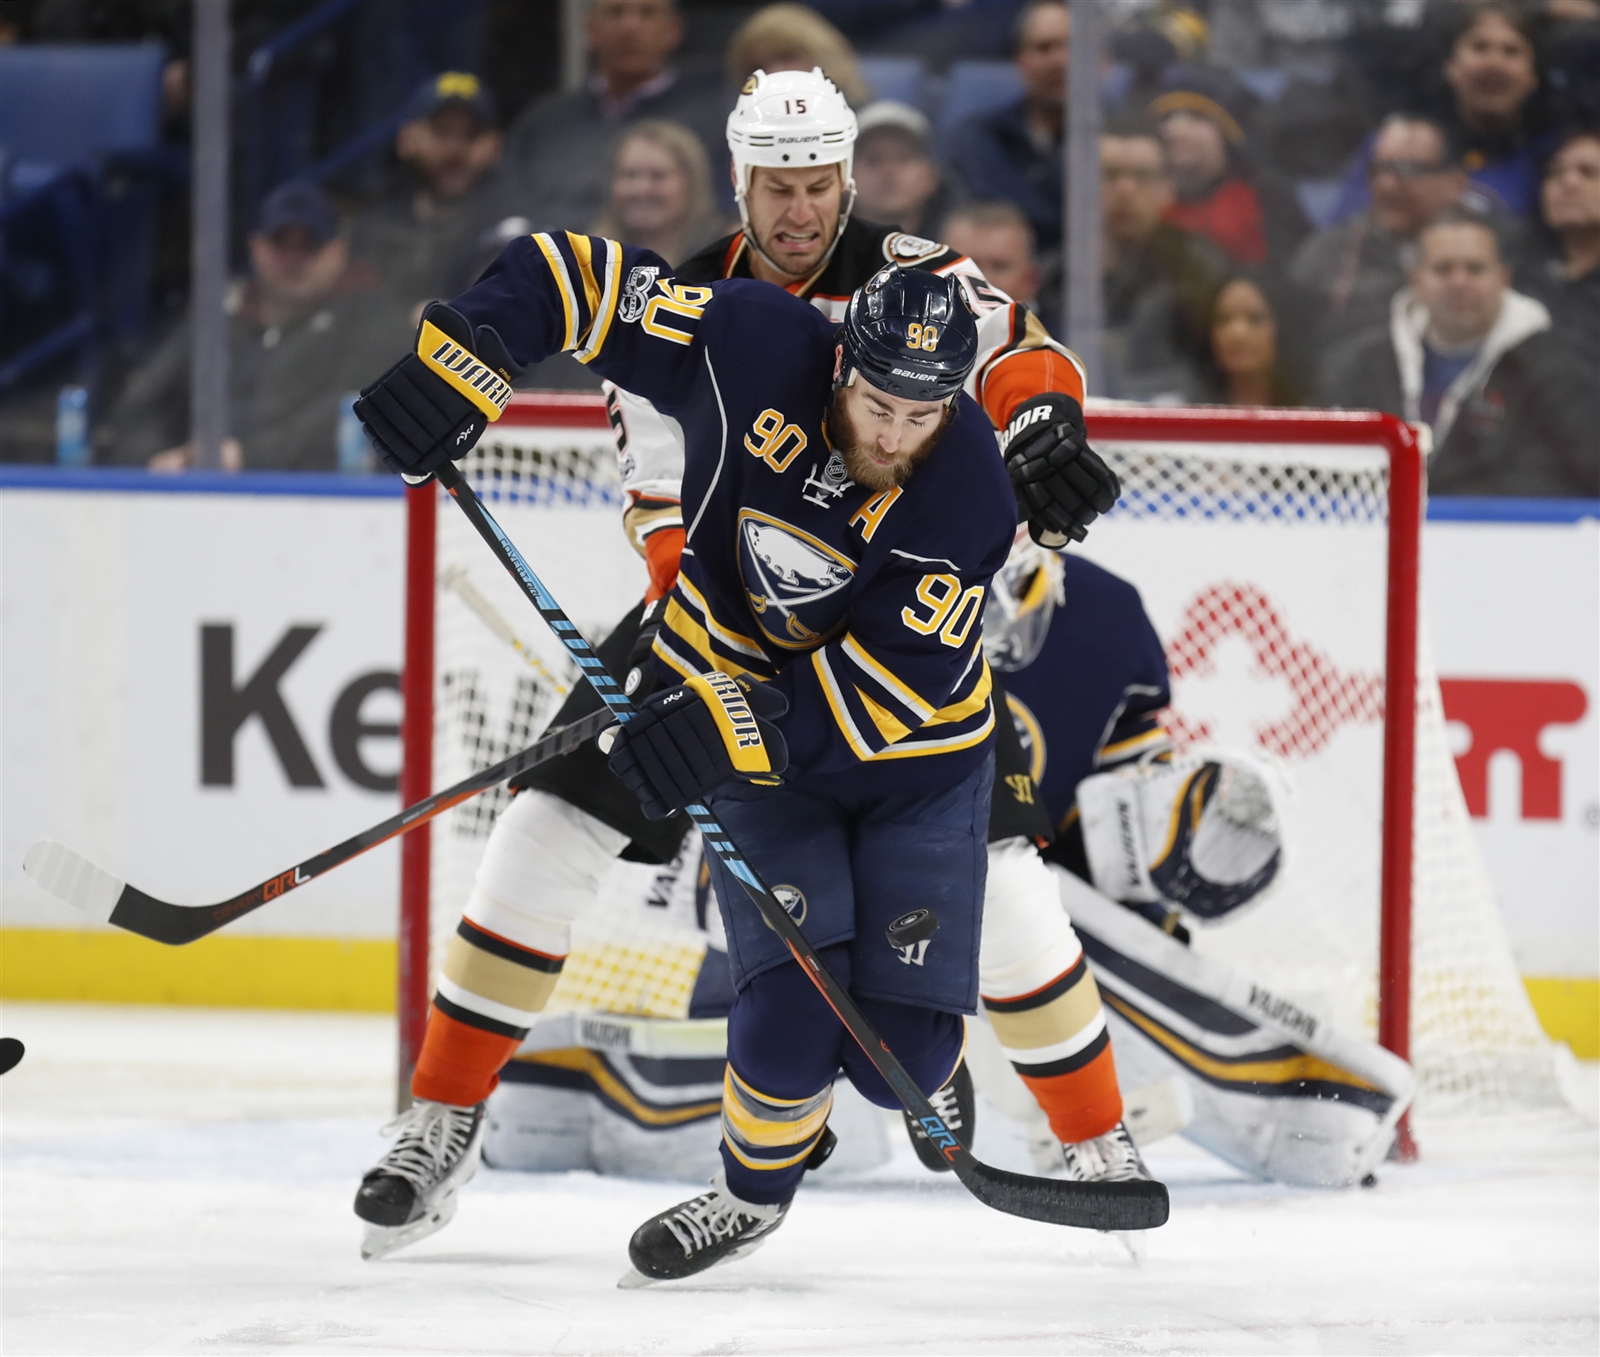 Ryan O'Reilly has 23 points in 18 victories and three points in 17 losses this season. (Harry Scull Jr./Buffalo News)